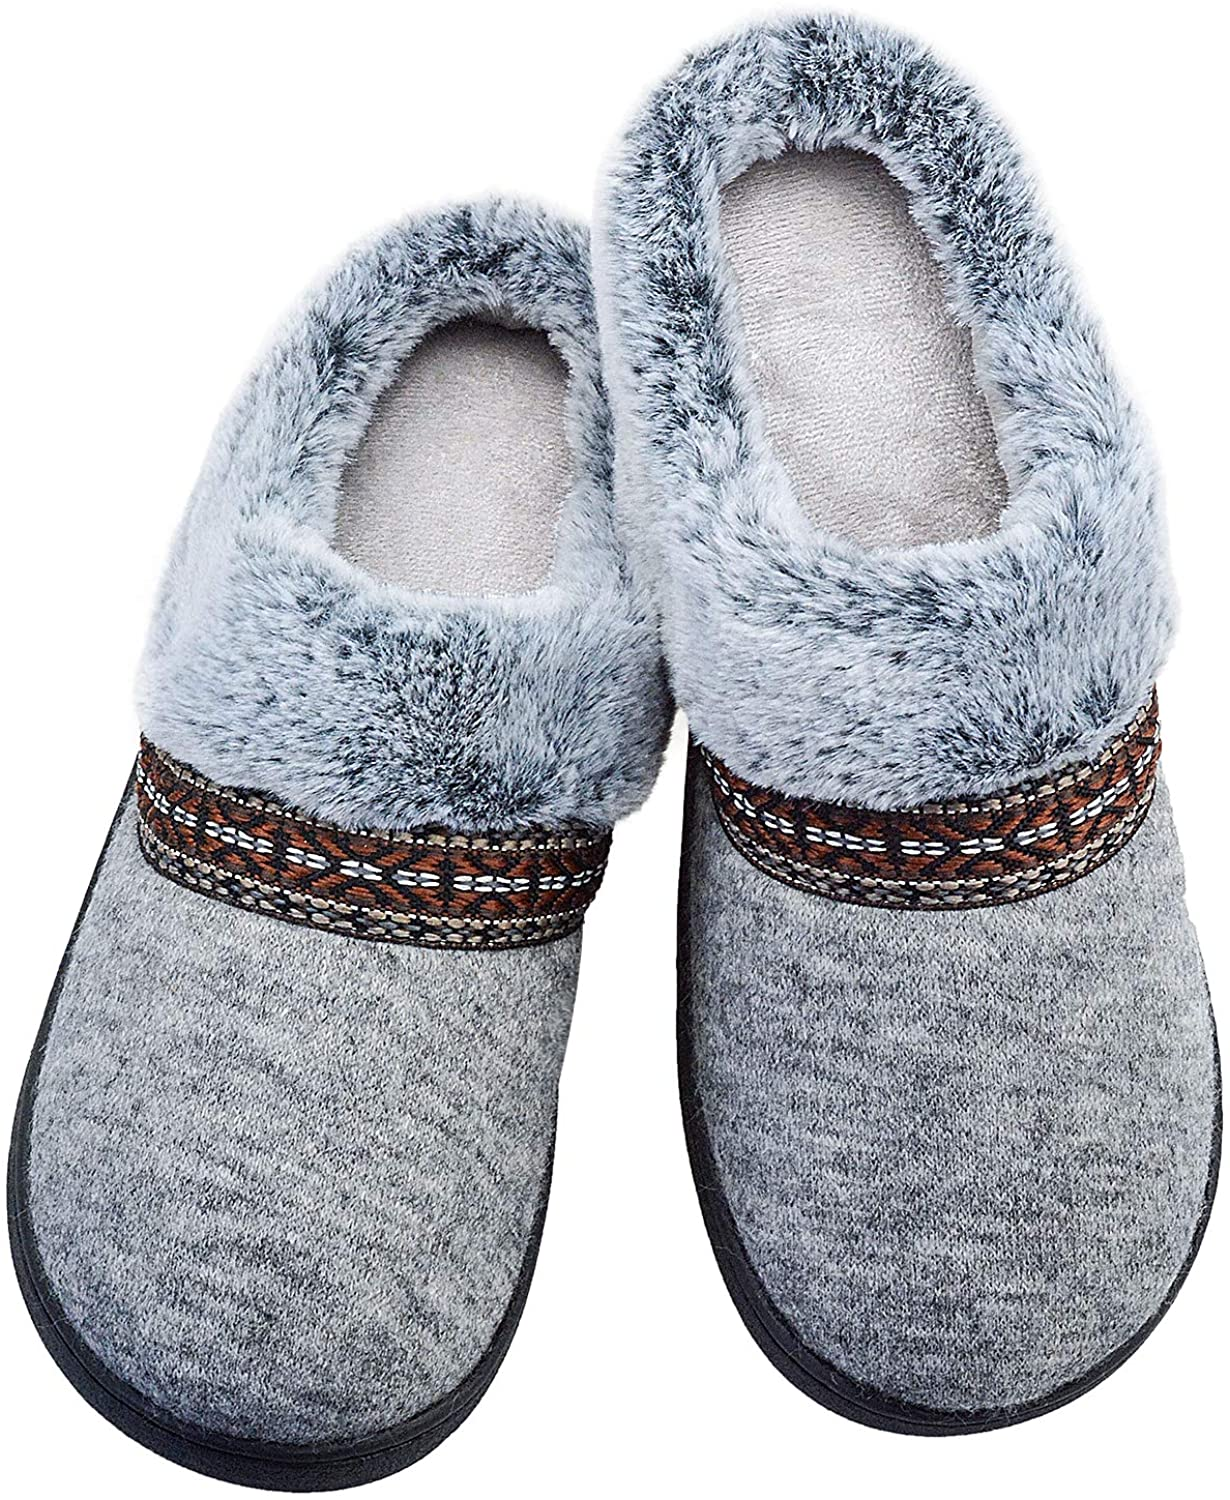 Fibure Slippers for Women Slide Slip-On Fur Bedroom Shoes Warm Fussy Anti Slip Memory Foam Comfort Cozy Casual Indoor Outdoor House Shoes Grey